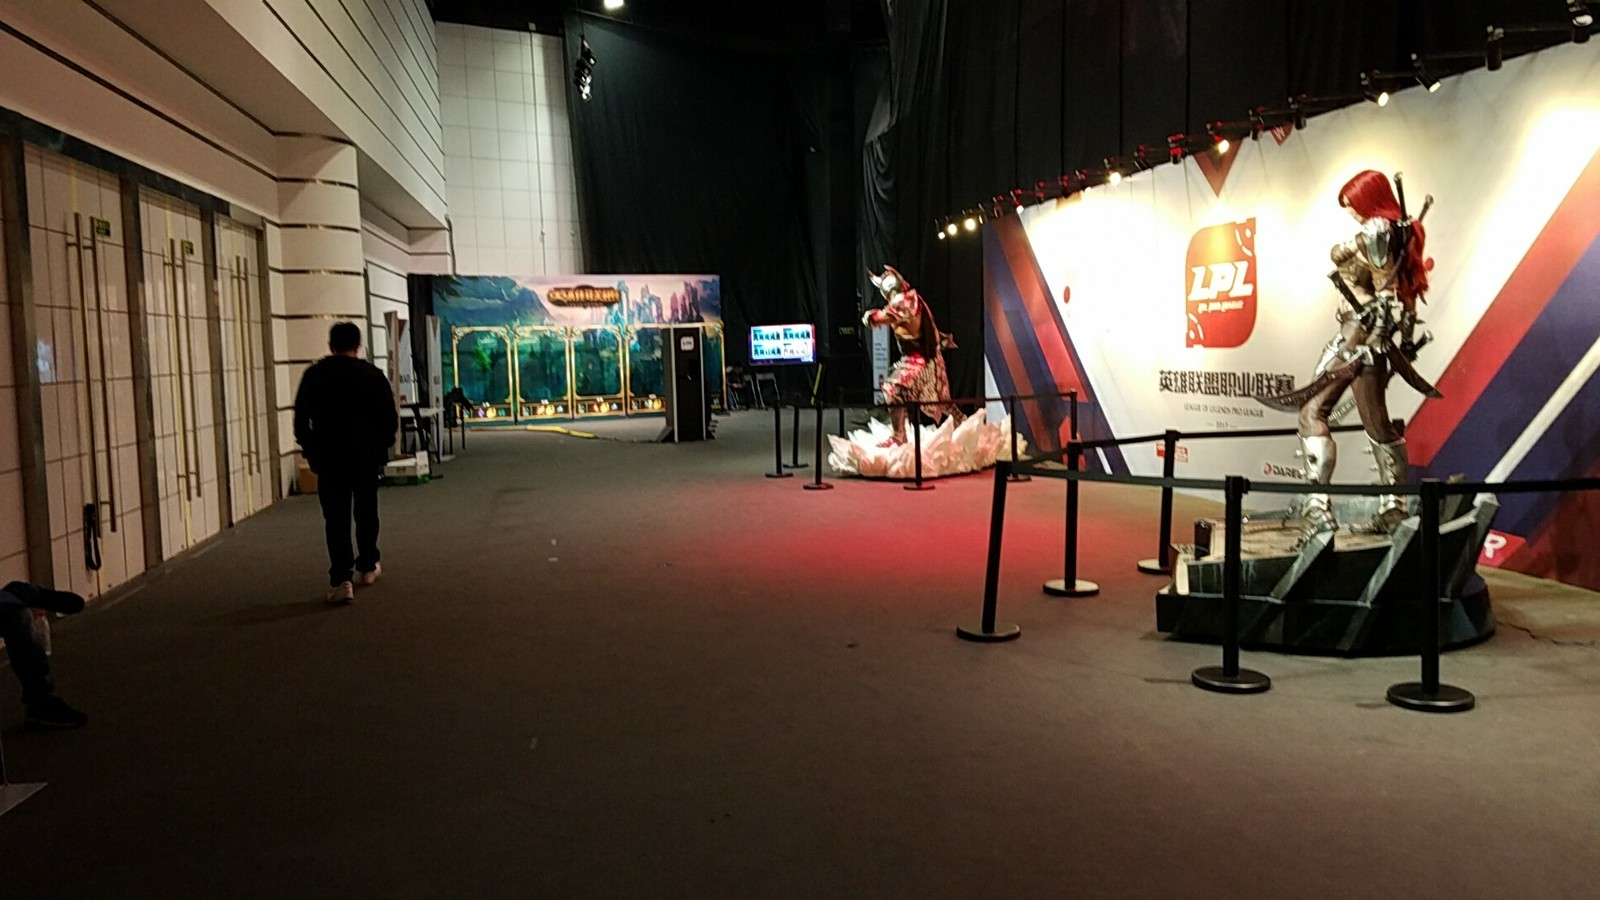 Entryway to the LoL Worlds event